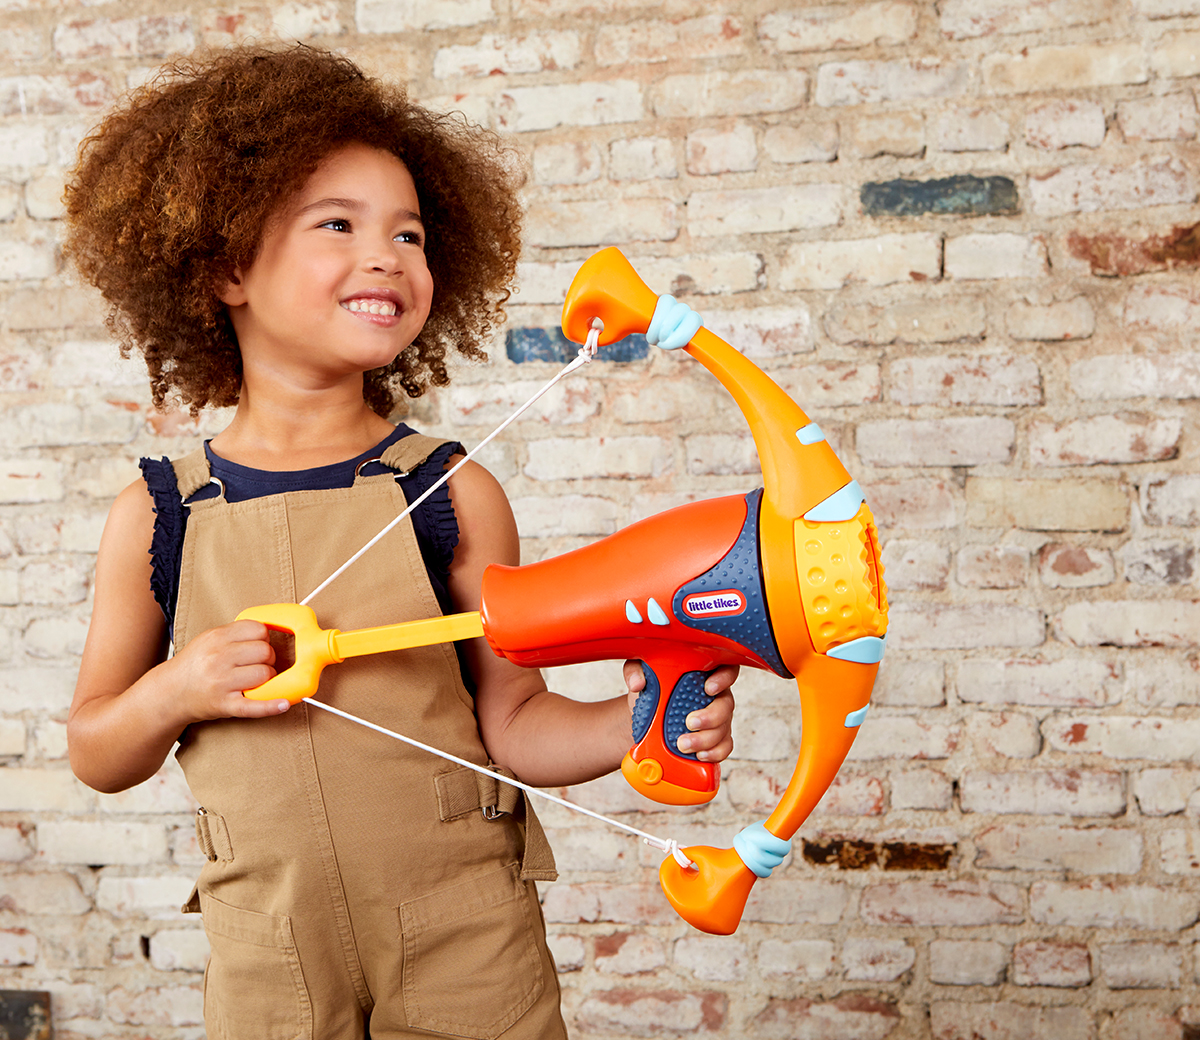 Dadsnet Toy Awards 2020 Winners Revealed, 651274 My First Mighty Blasters Mighty Bow BTY 0452%, product-review%